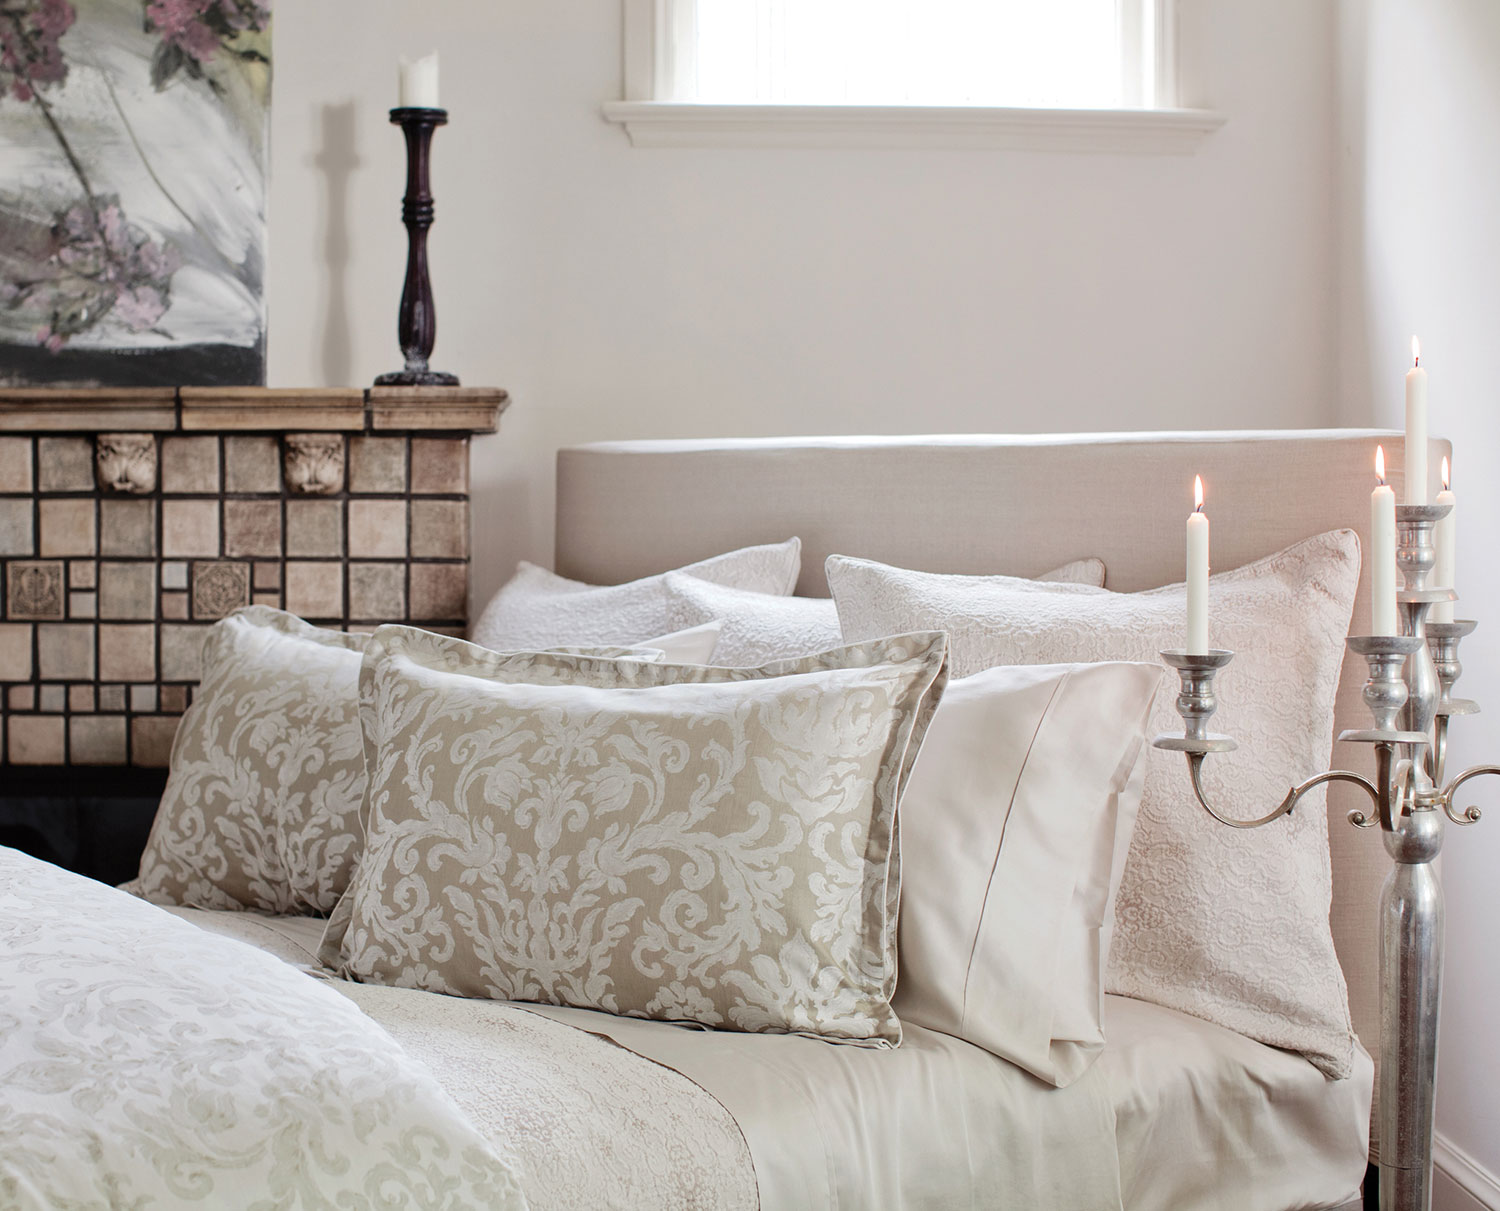 Fiordaliso Natural Matelasse By St Geneve Luxury Bedding